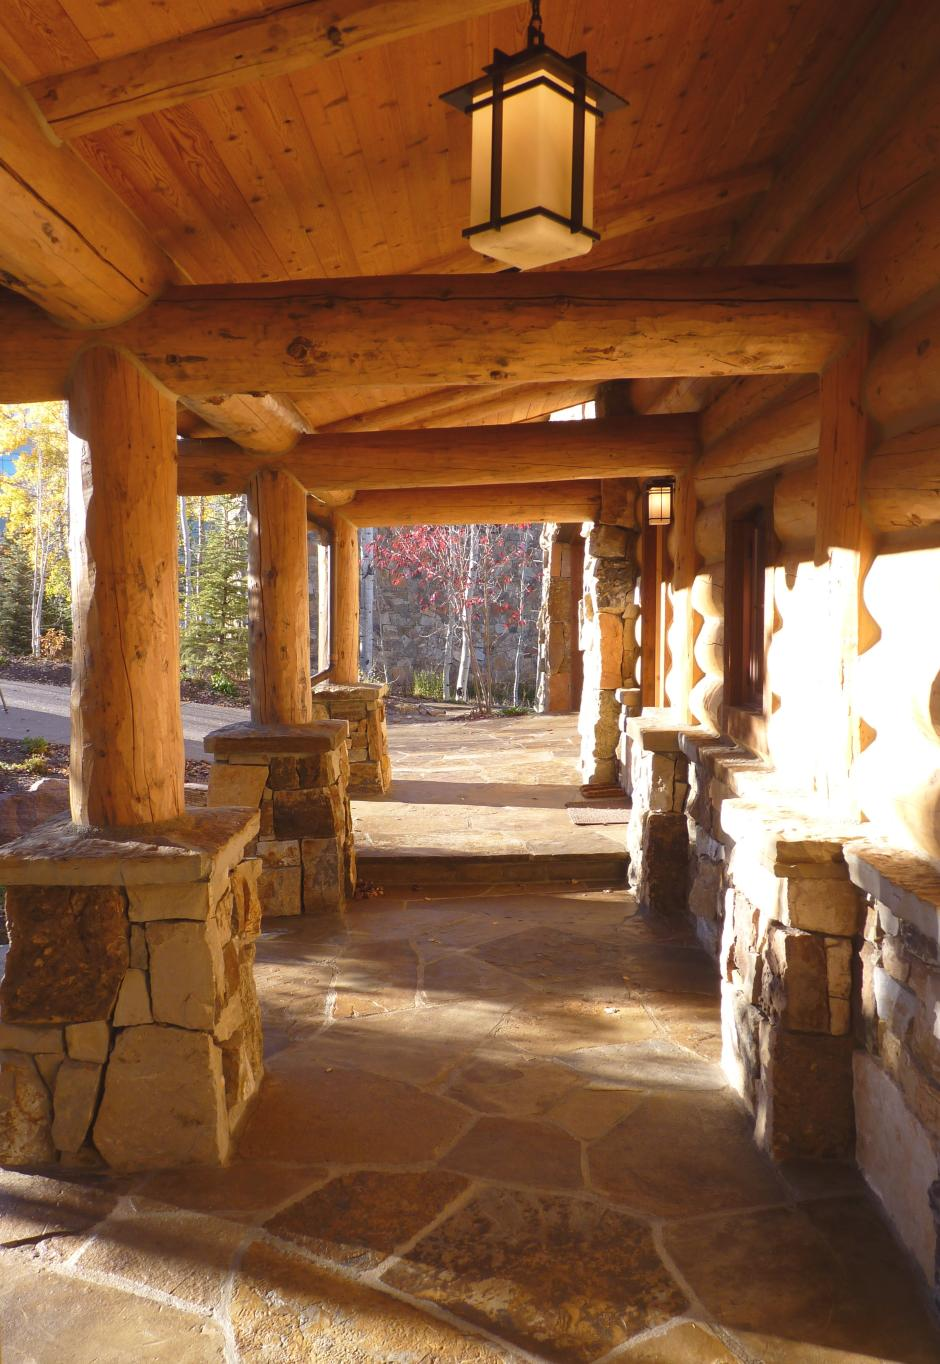 117 Exterior Porch Log Columns - Ski Home in Telluride Mountain Village, CO